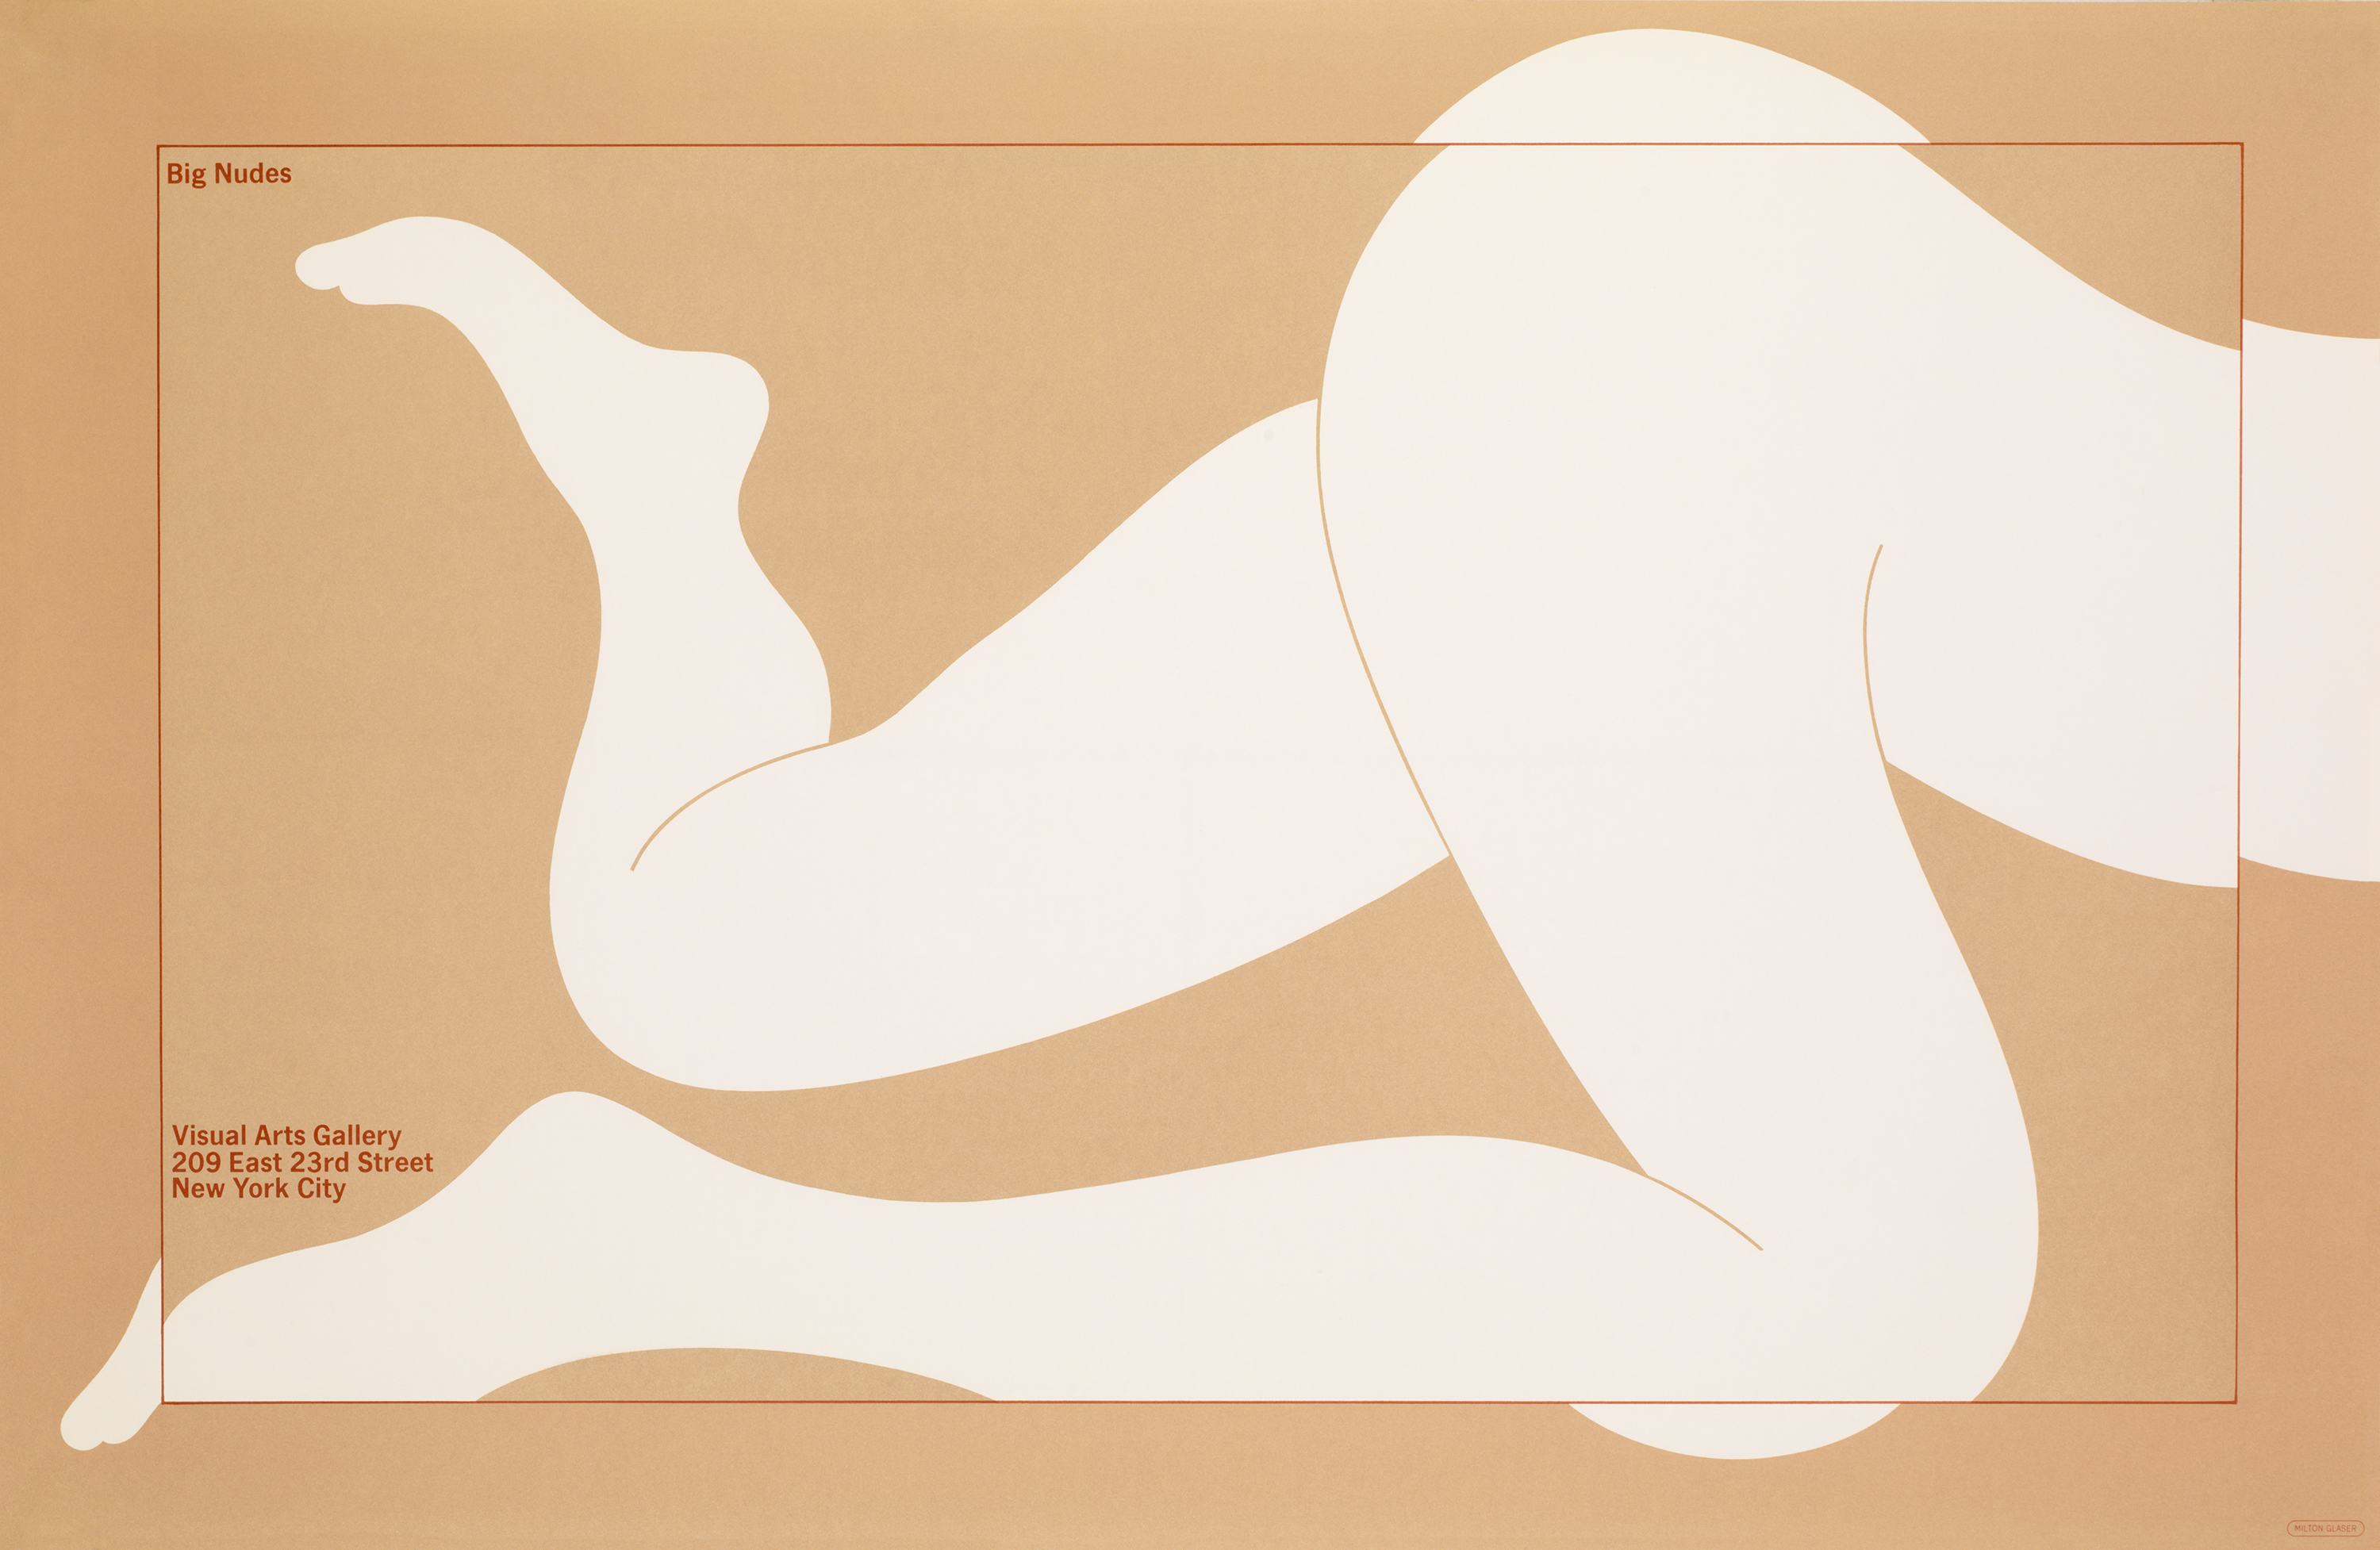 The lower body of a nude figure in white silhouetted profile, contained in a thin red box.